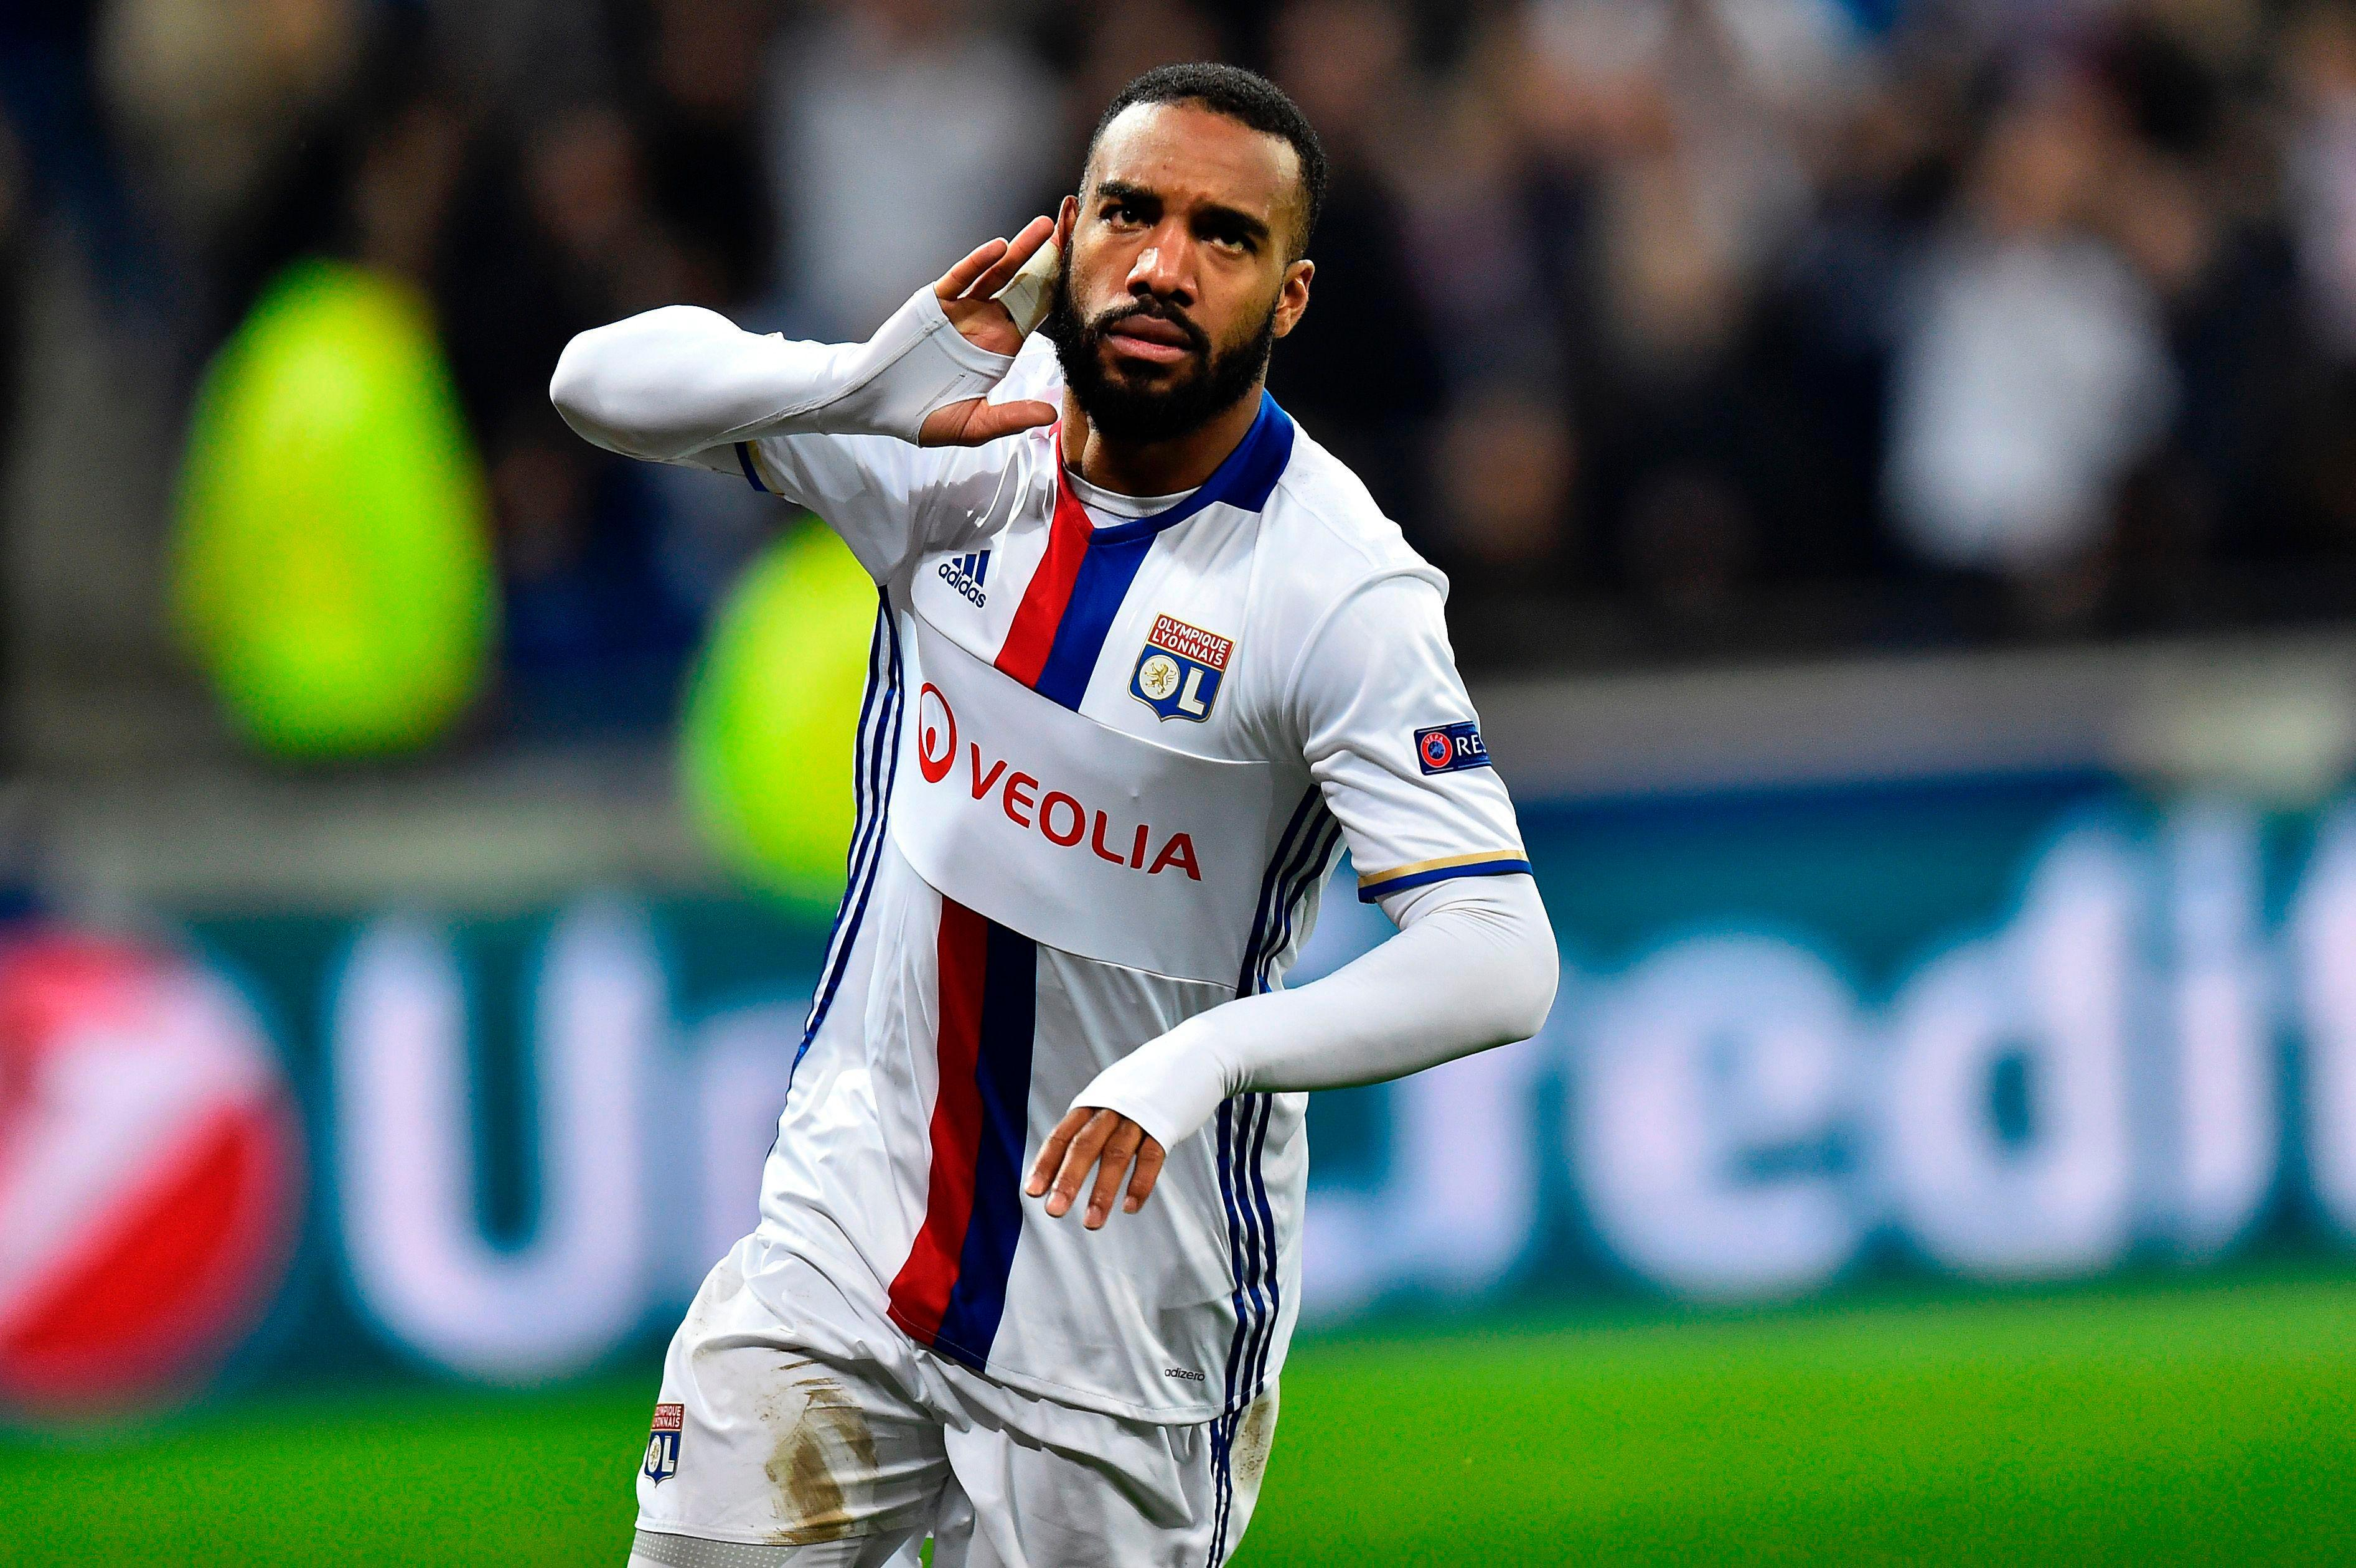 Lyon are demanding £57m for striker Lacazette